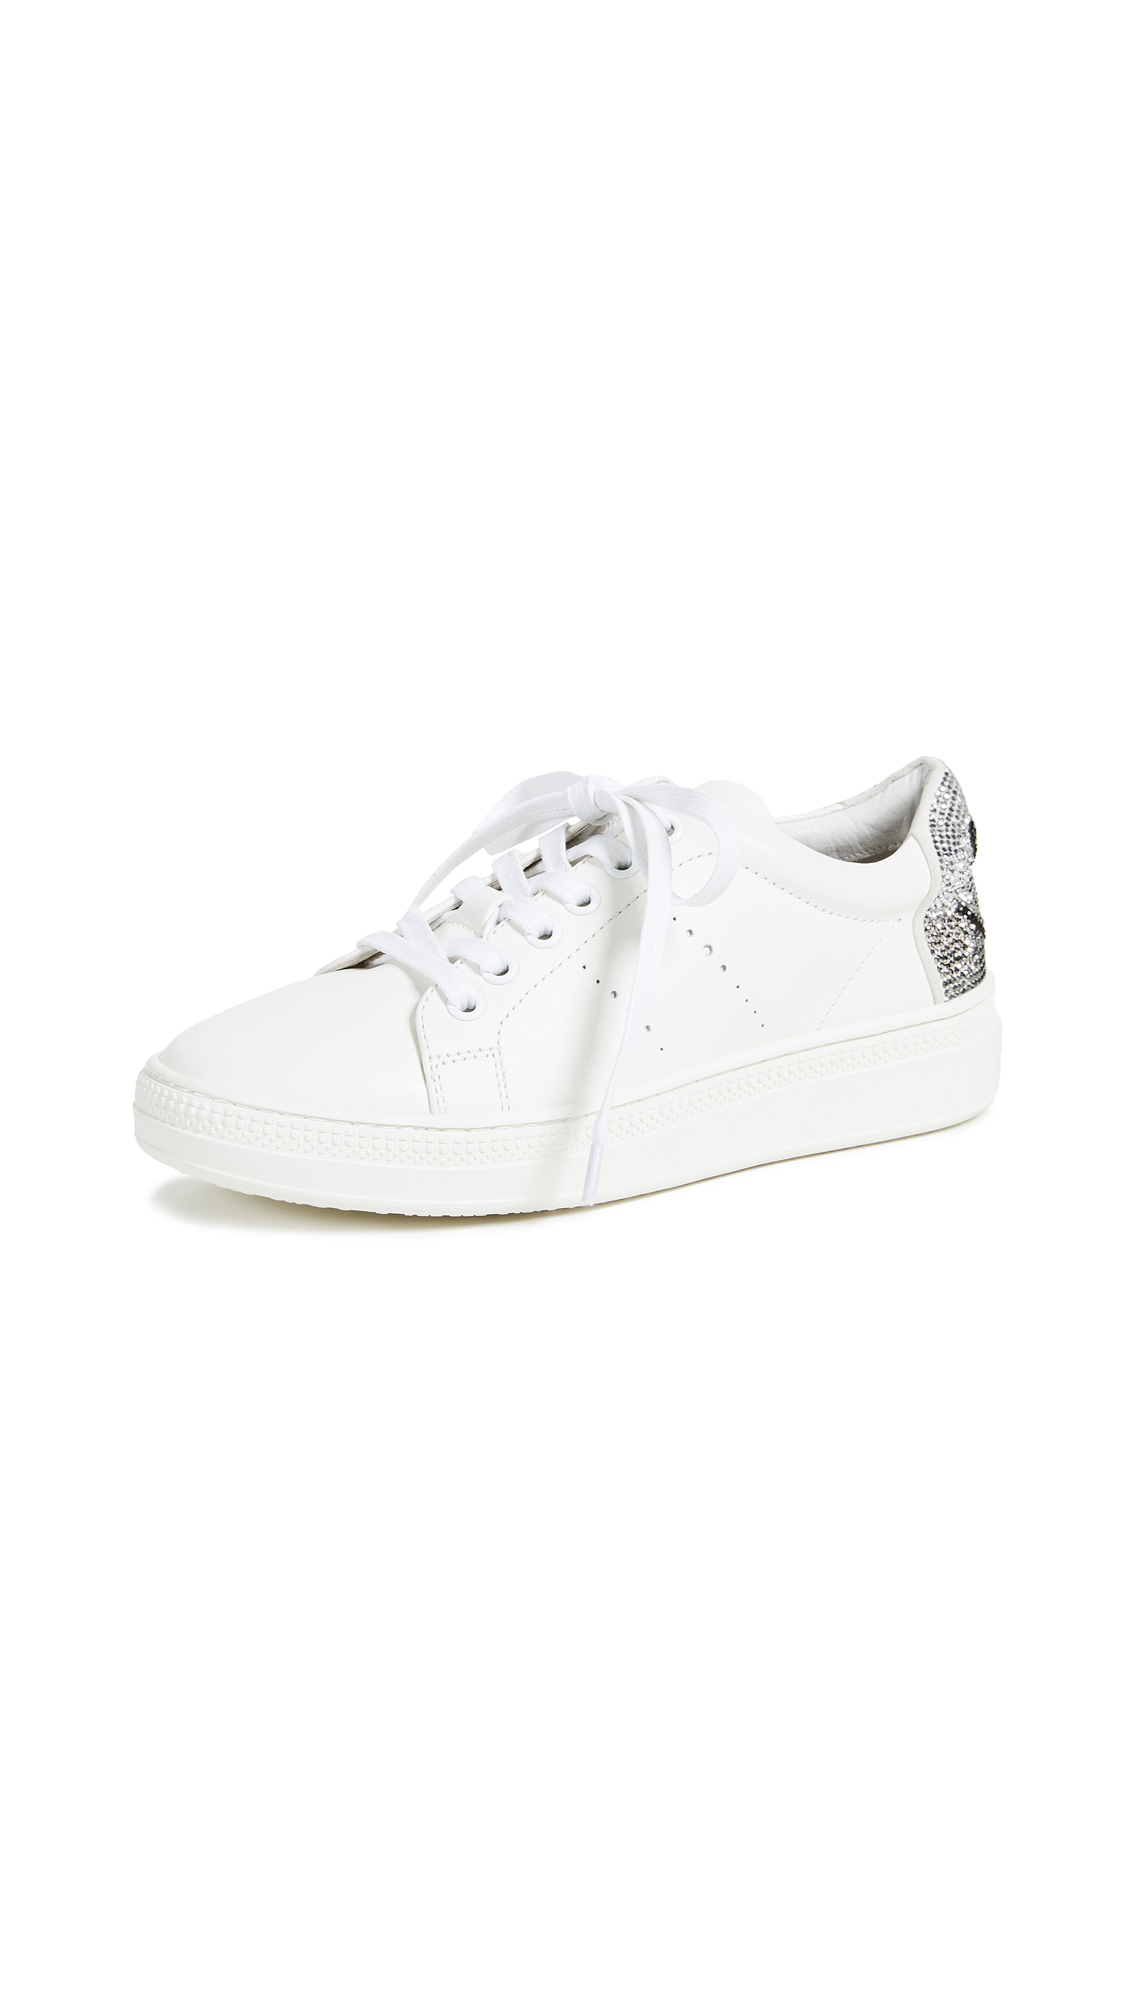 ONE by Wink Sneakers In Silver